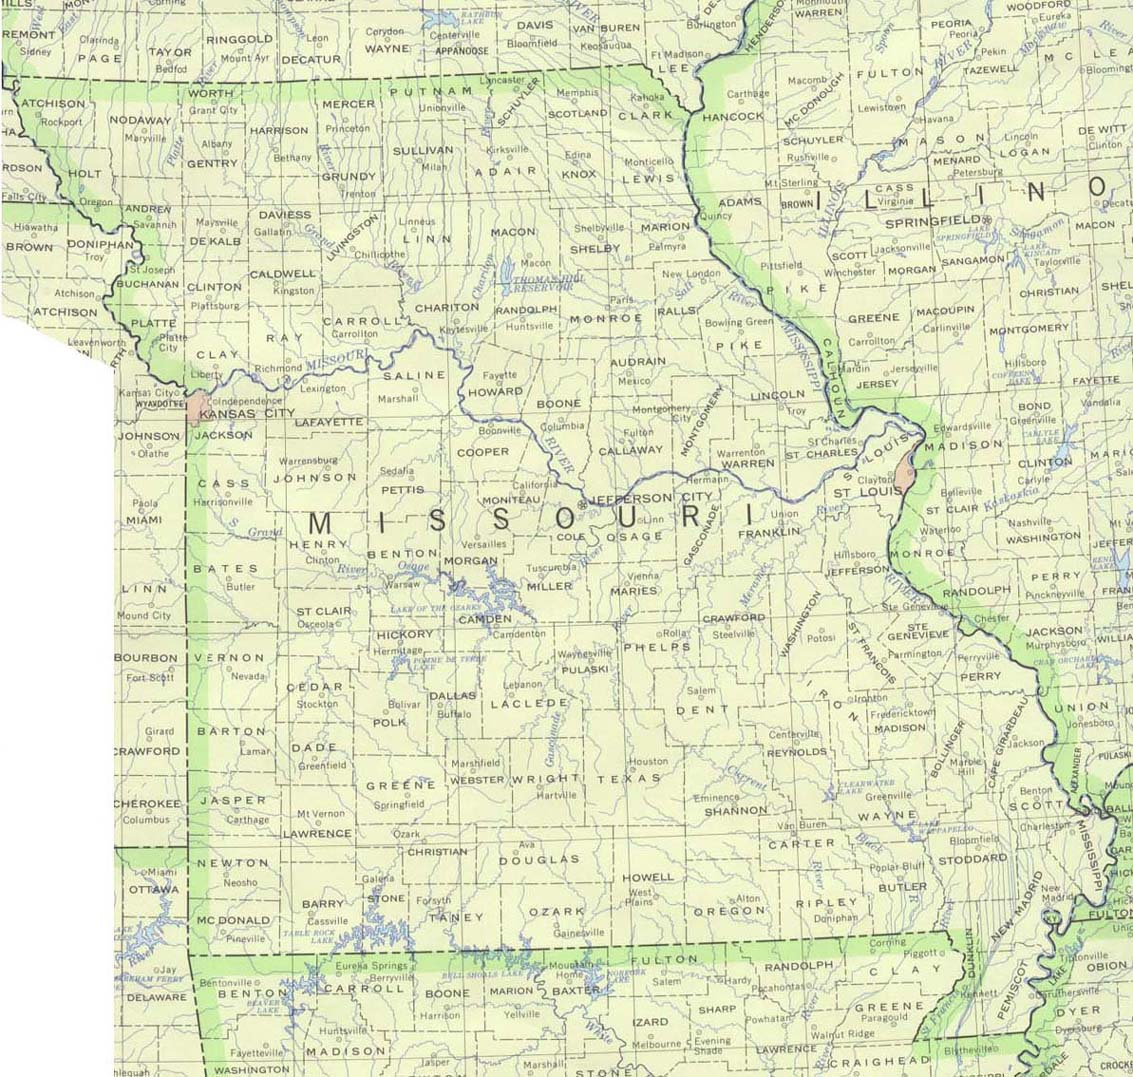 government of missouri, large map of missouri, detailed road map of missouri, topographic map of missouri, geologic map of missouri, printable map of missouri, continent map of missouri, google map of missouri, towns of missouri, map of arkansas and missouri, highway map of missouri, area code map of missouri, lake map of missouri, us map of missouri, soil map of missouri, political map of missouri, zip map of missouri, schools of missouri, show map of missouri, full map of missouri, on county maps of missouri